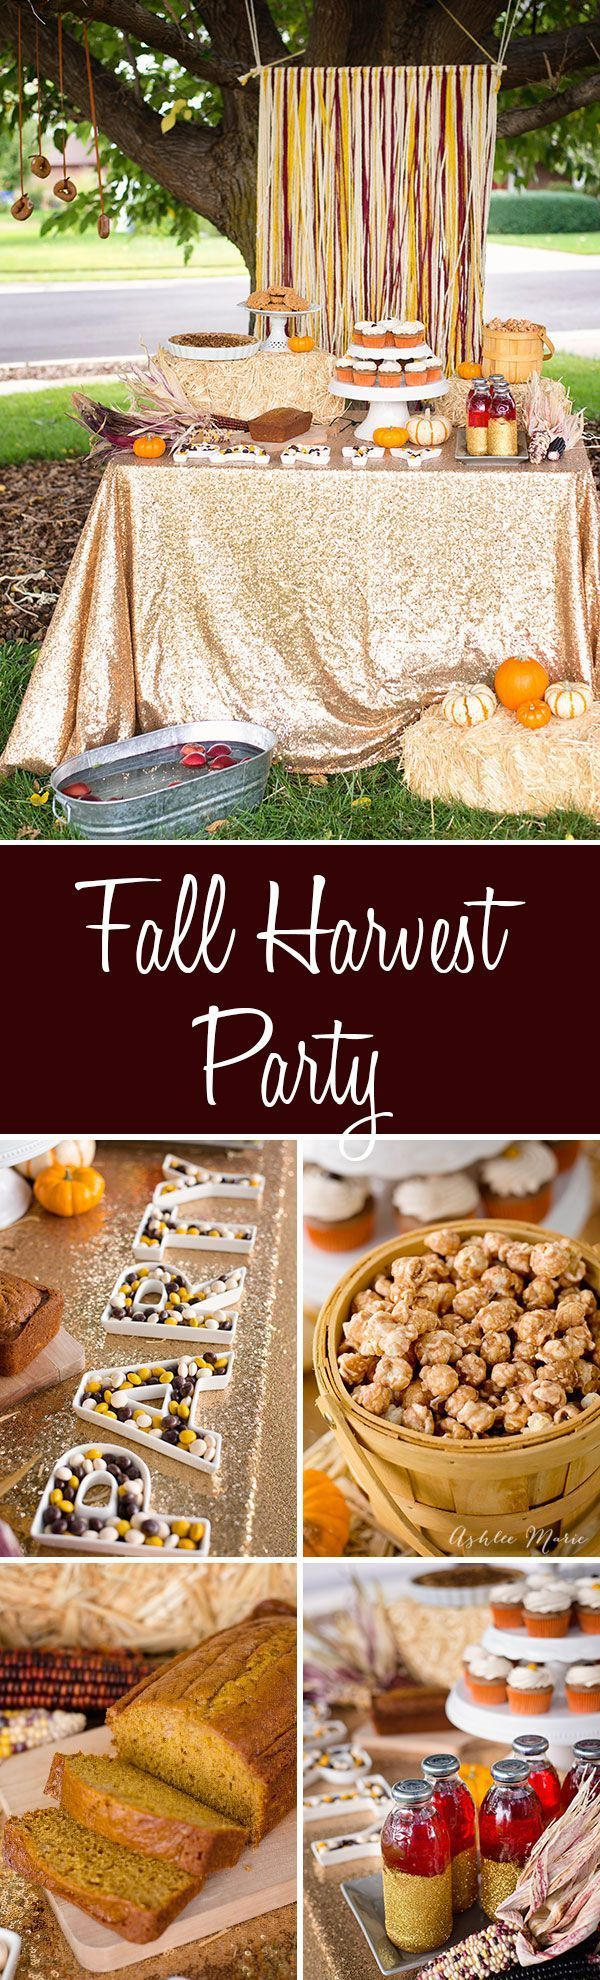 A Fall harvest party celebrating all things Fall, pumpkin bread, apple pie, cinnamon toast popcorn, pecan pie M&M's® cupcakes and more. Easy to put together with decorating tips and activities.